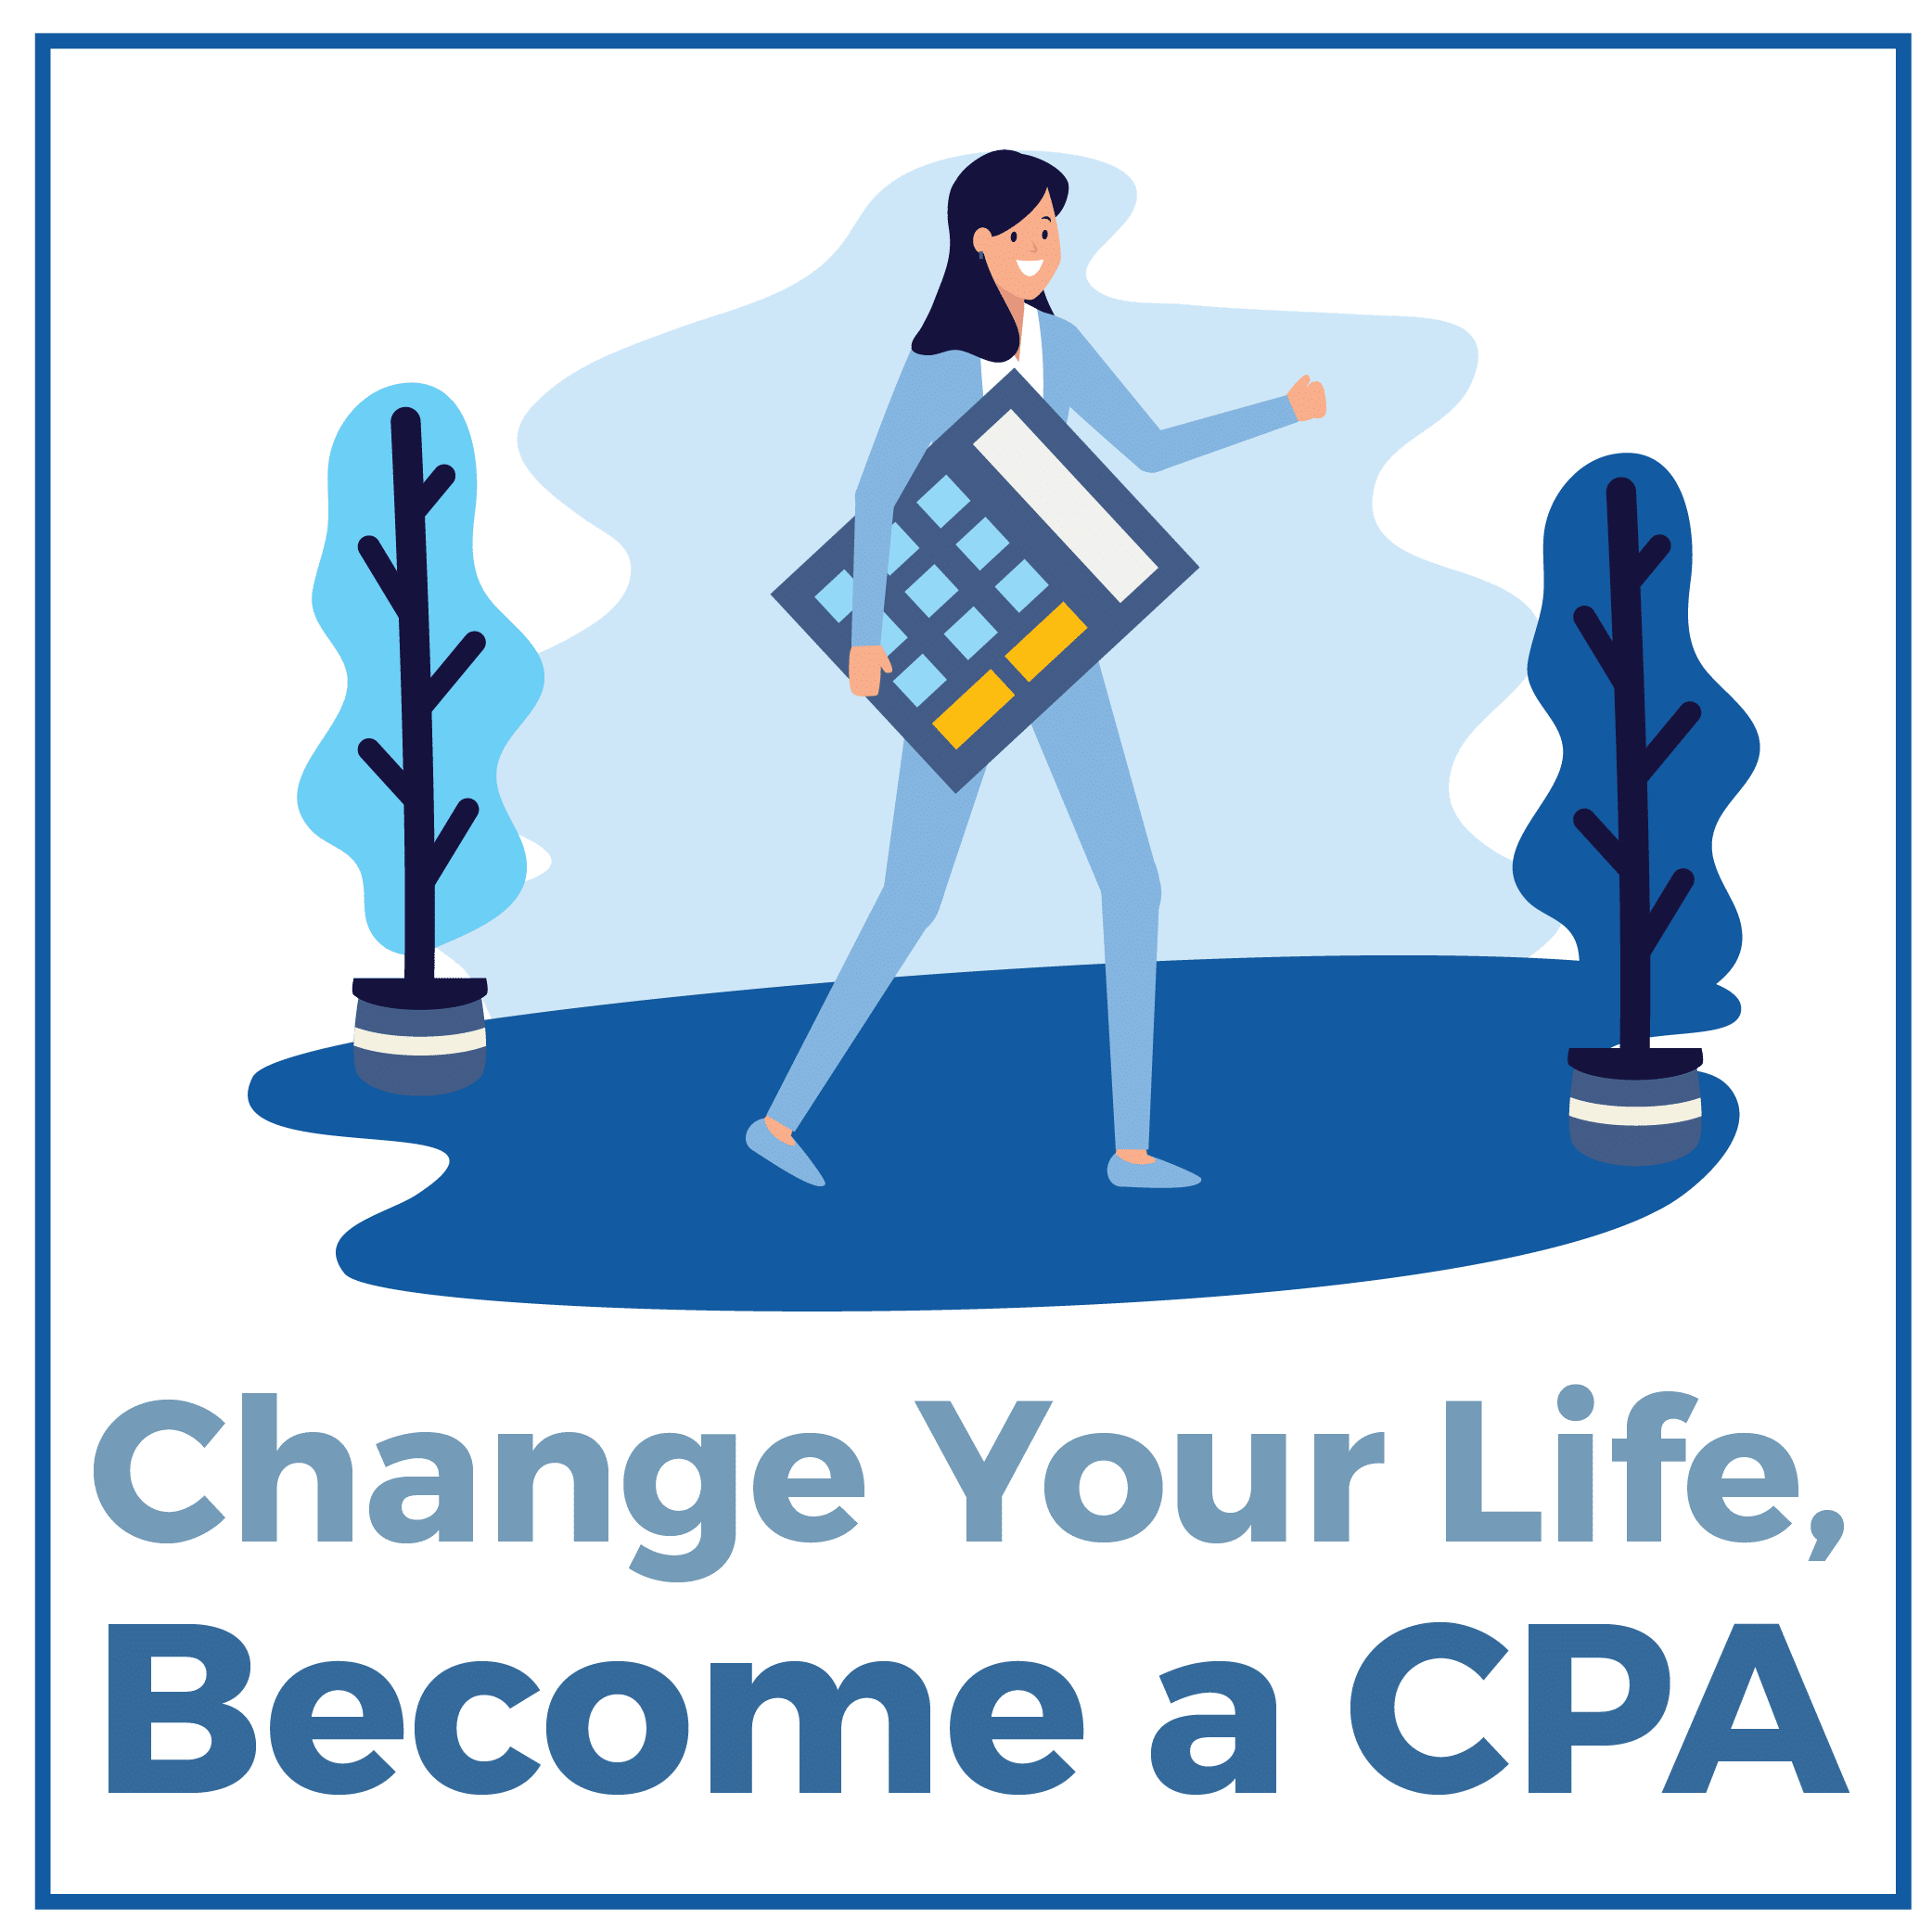 Change Your Life, Become a CPA